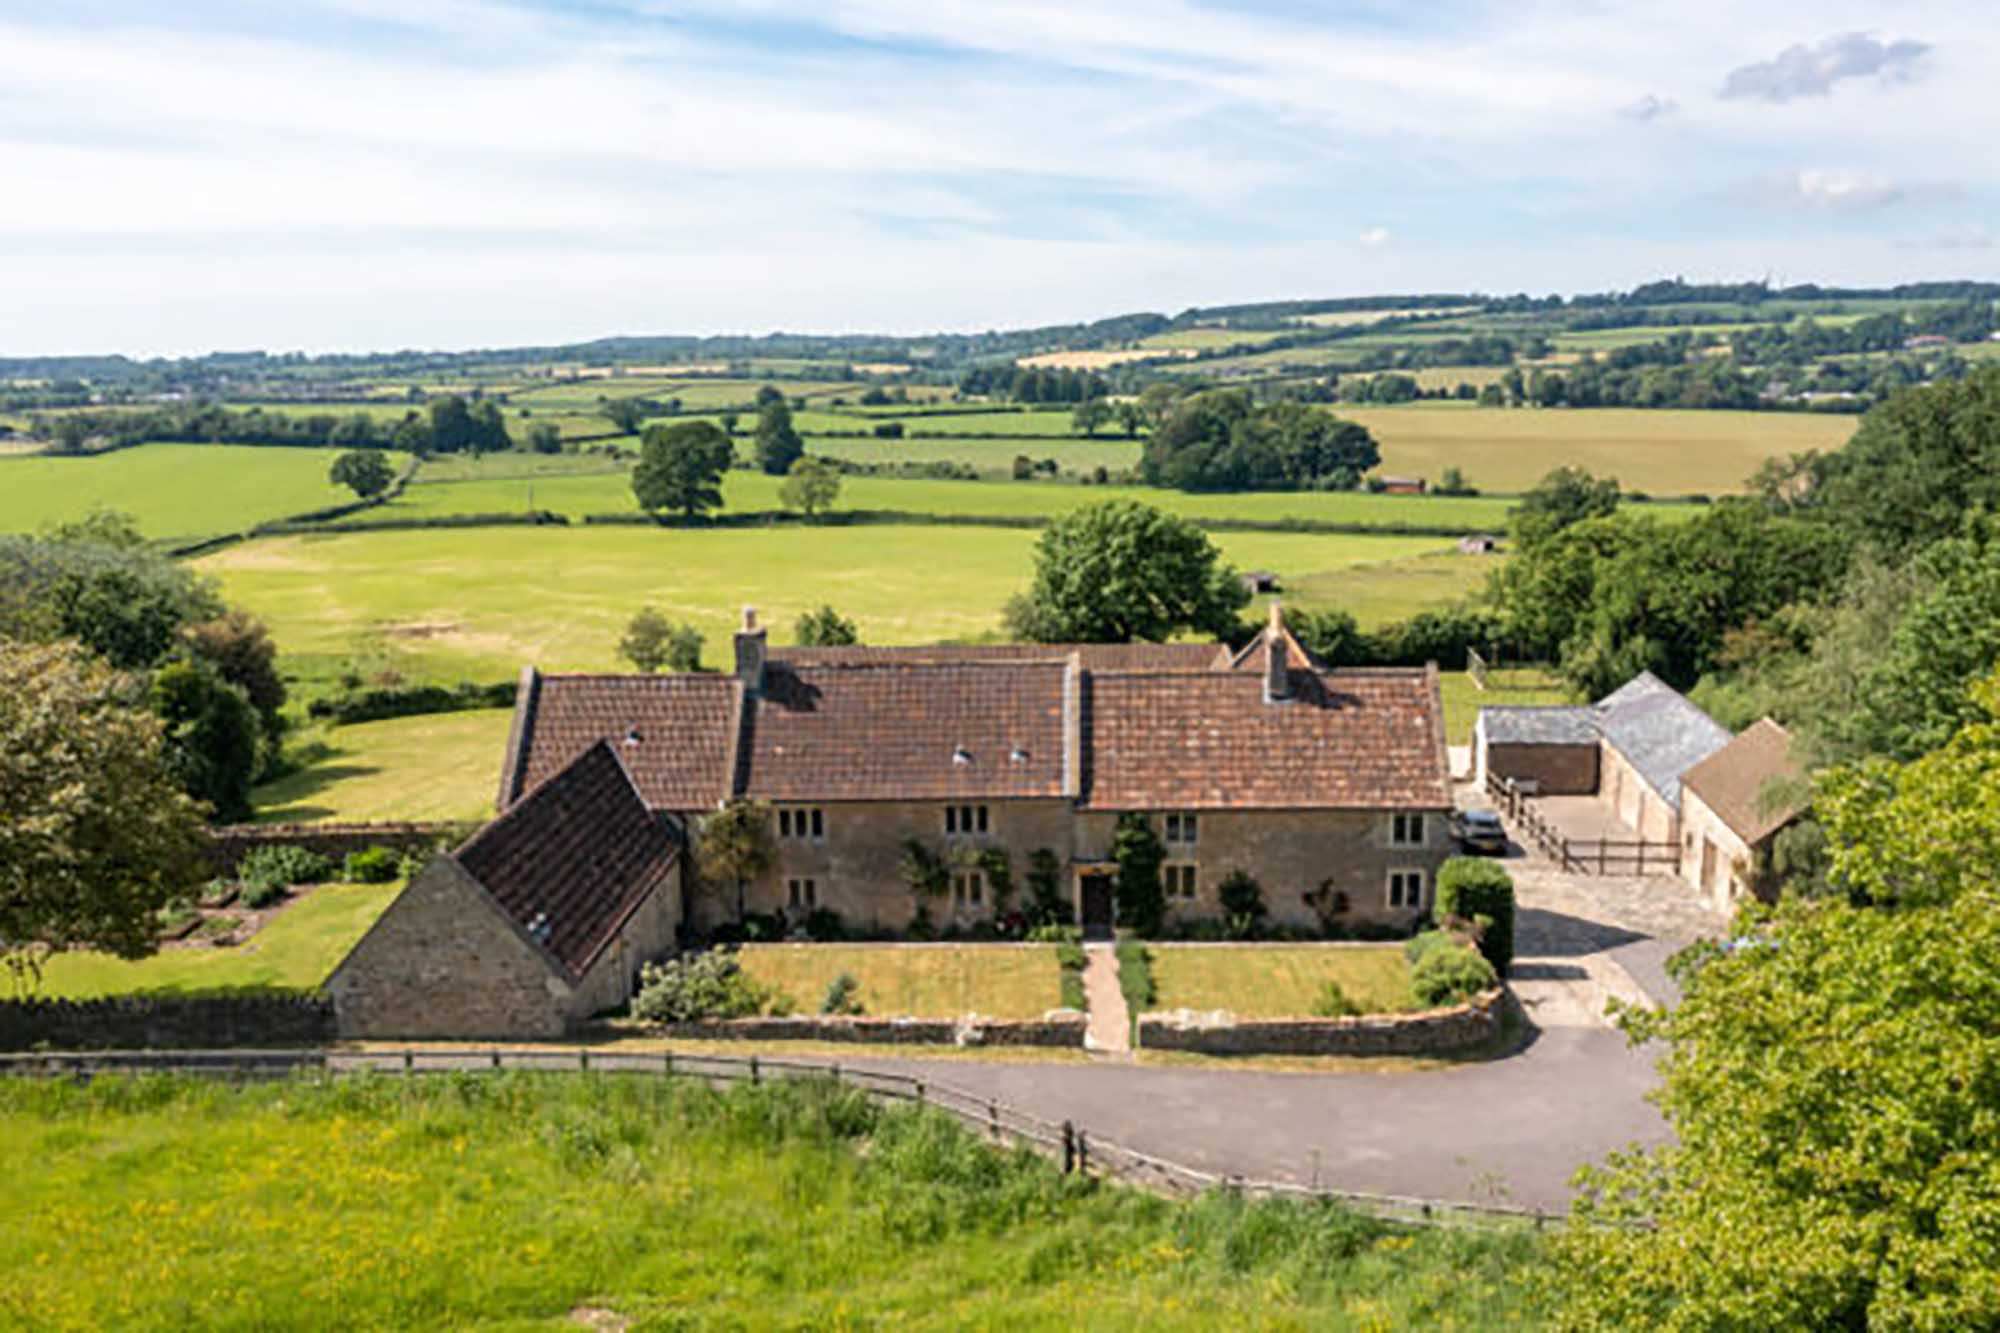 Nr Bruton/Frome, Country House with views, land, outbuildings